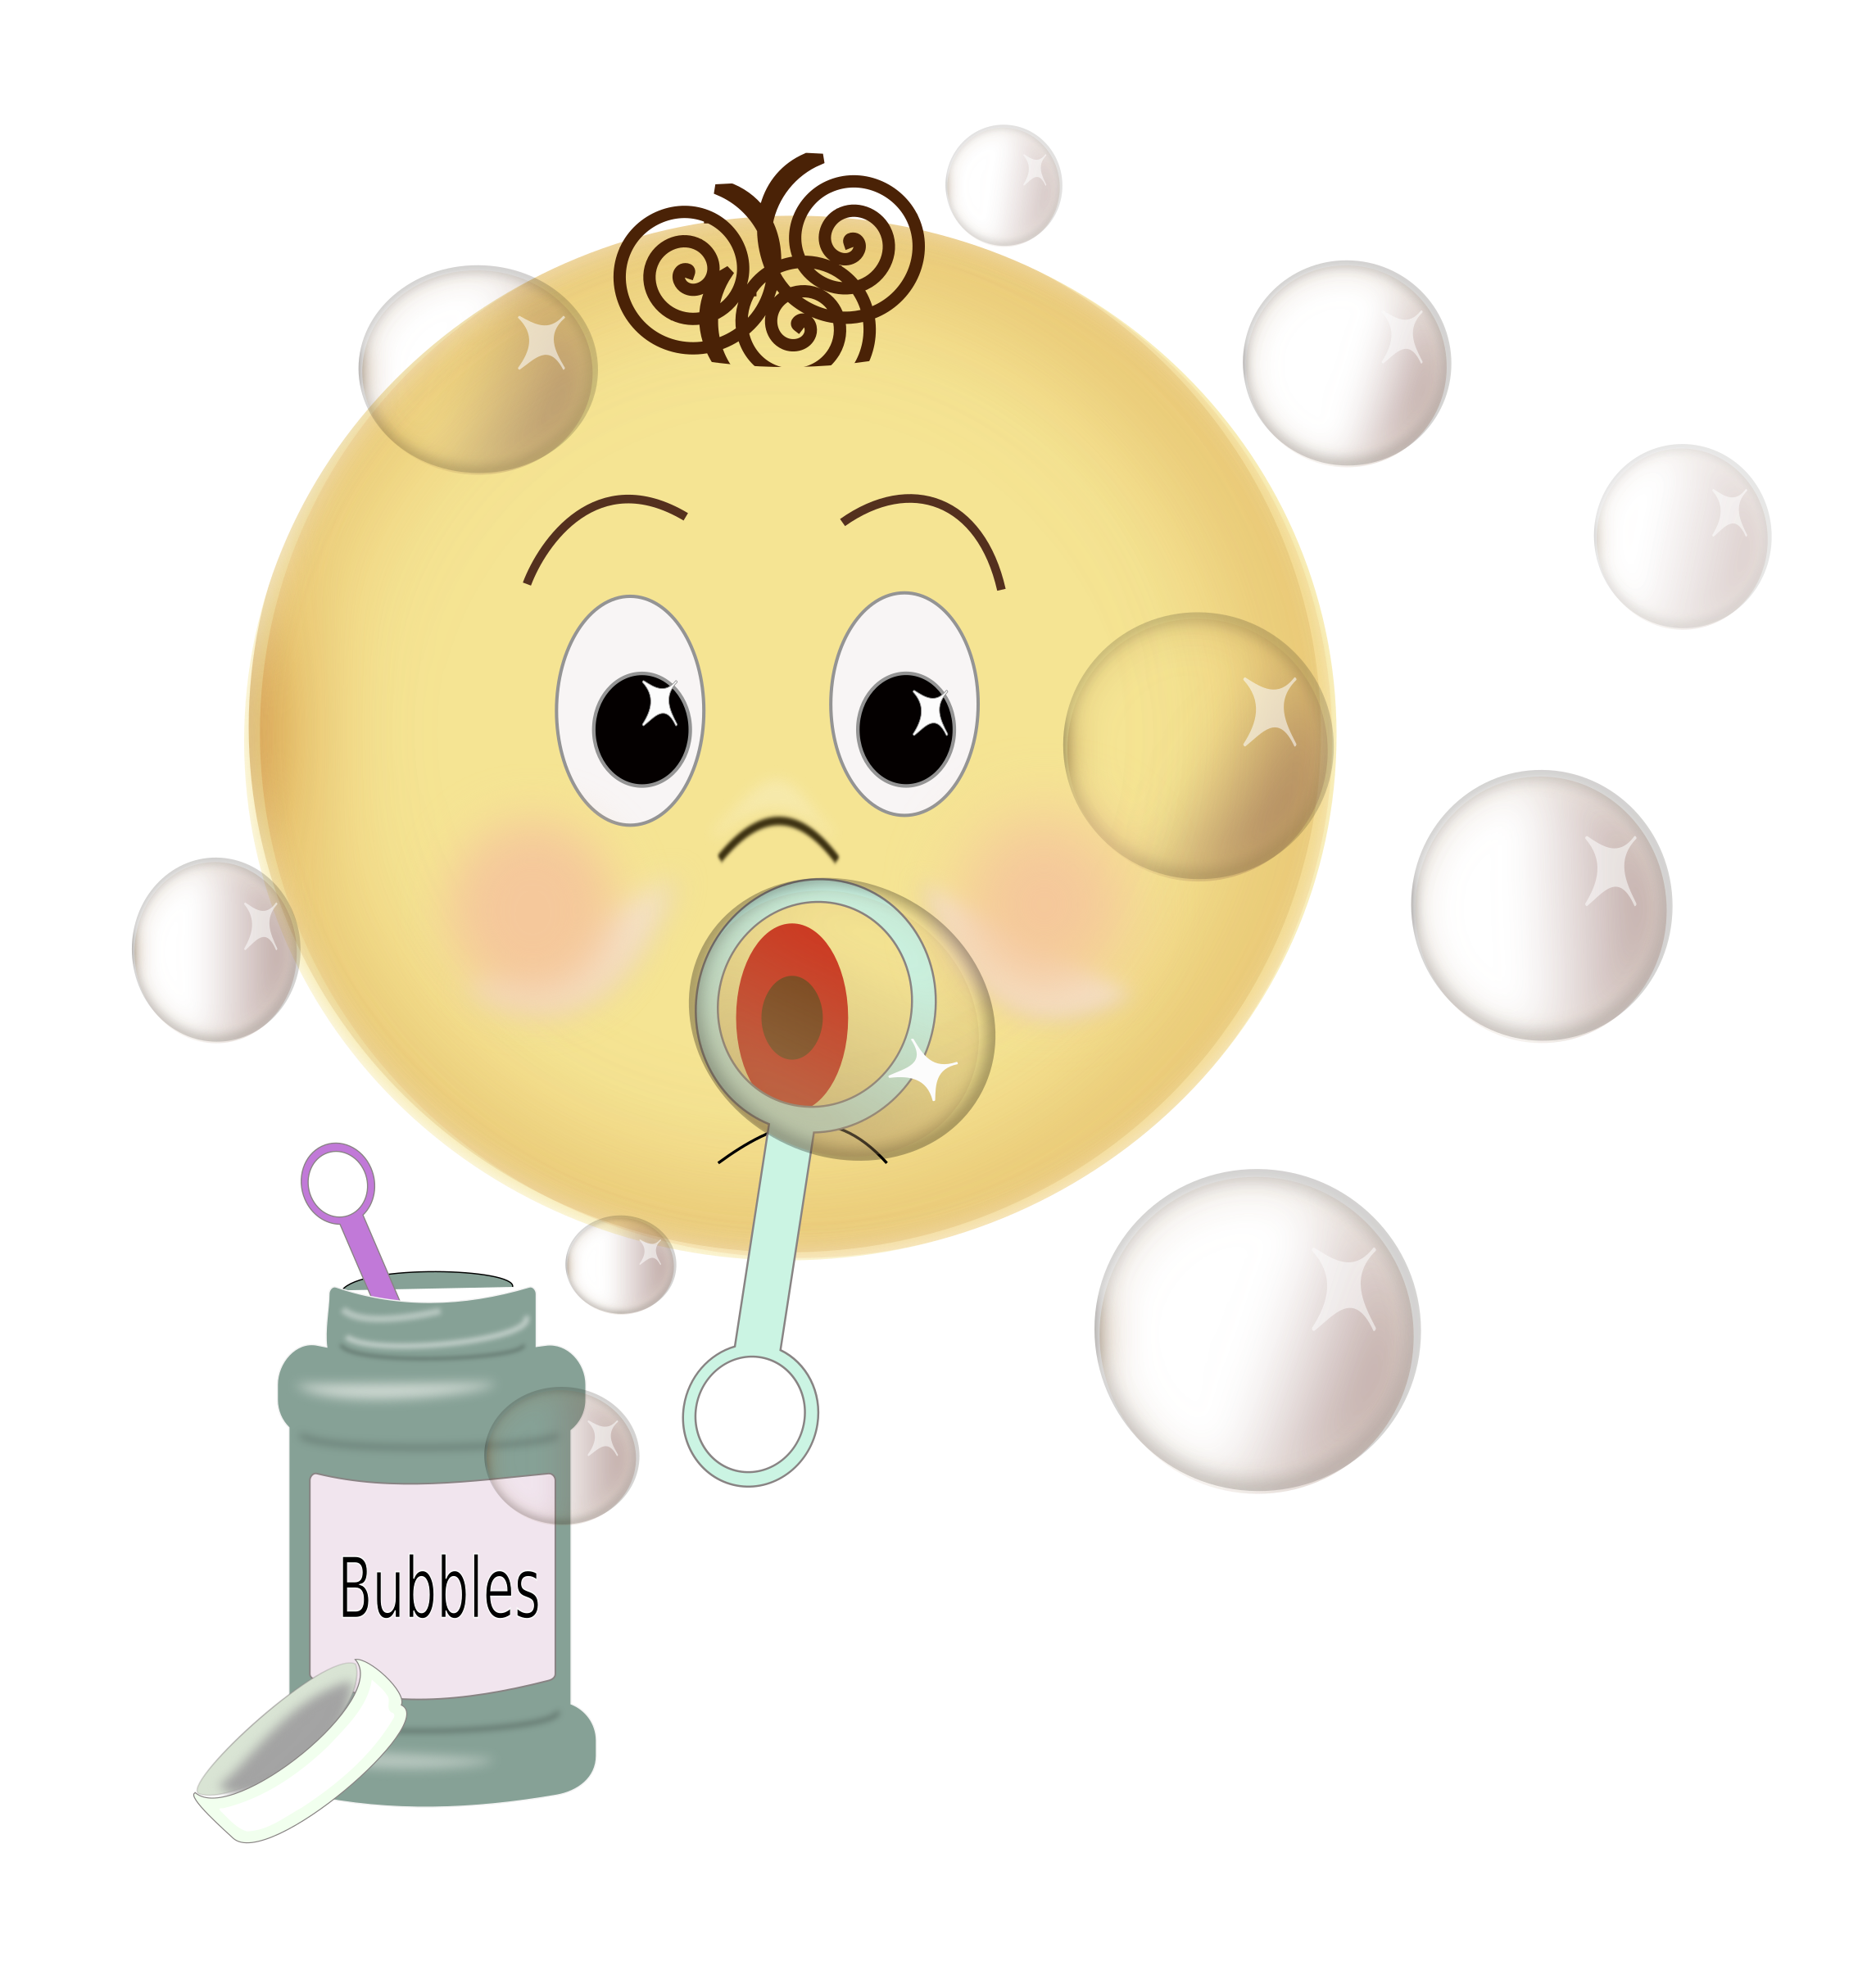 free download Blowing big image png. Bubbles clipart blew